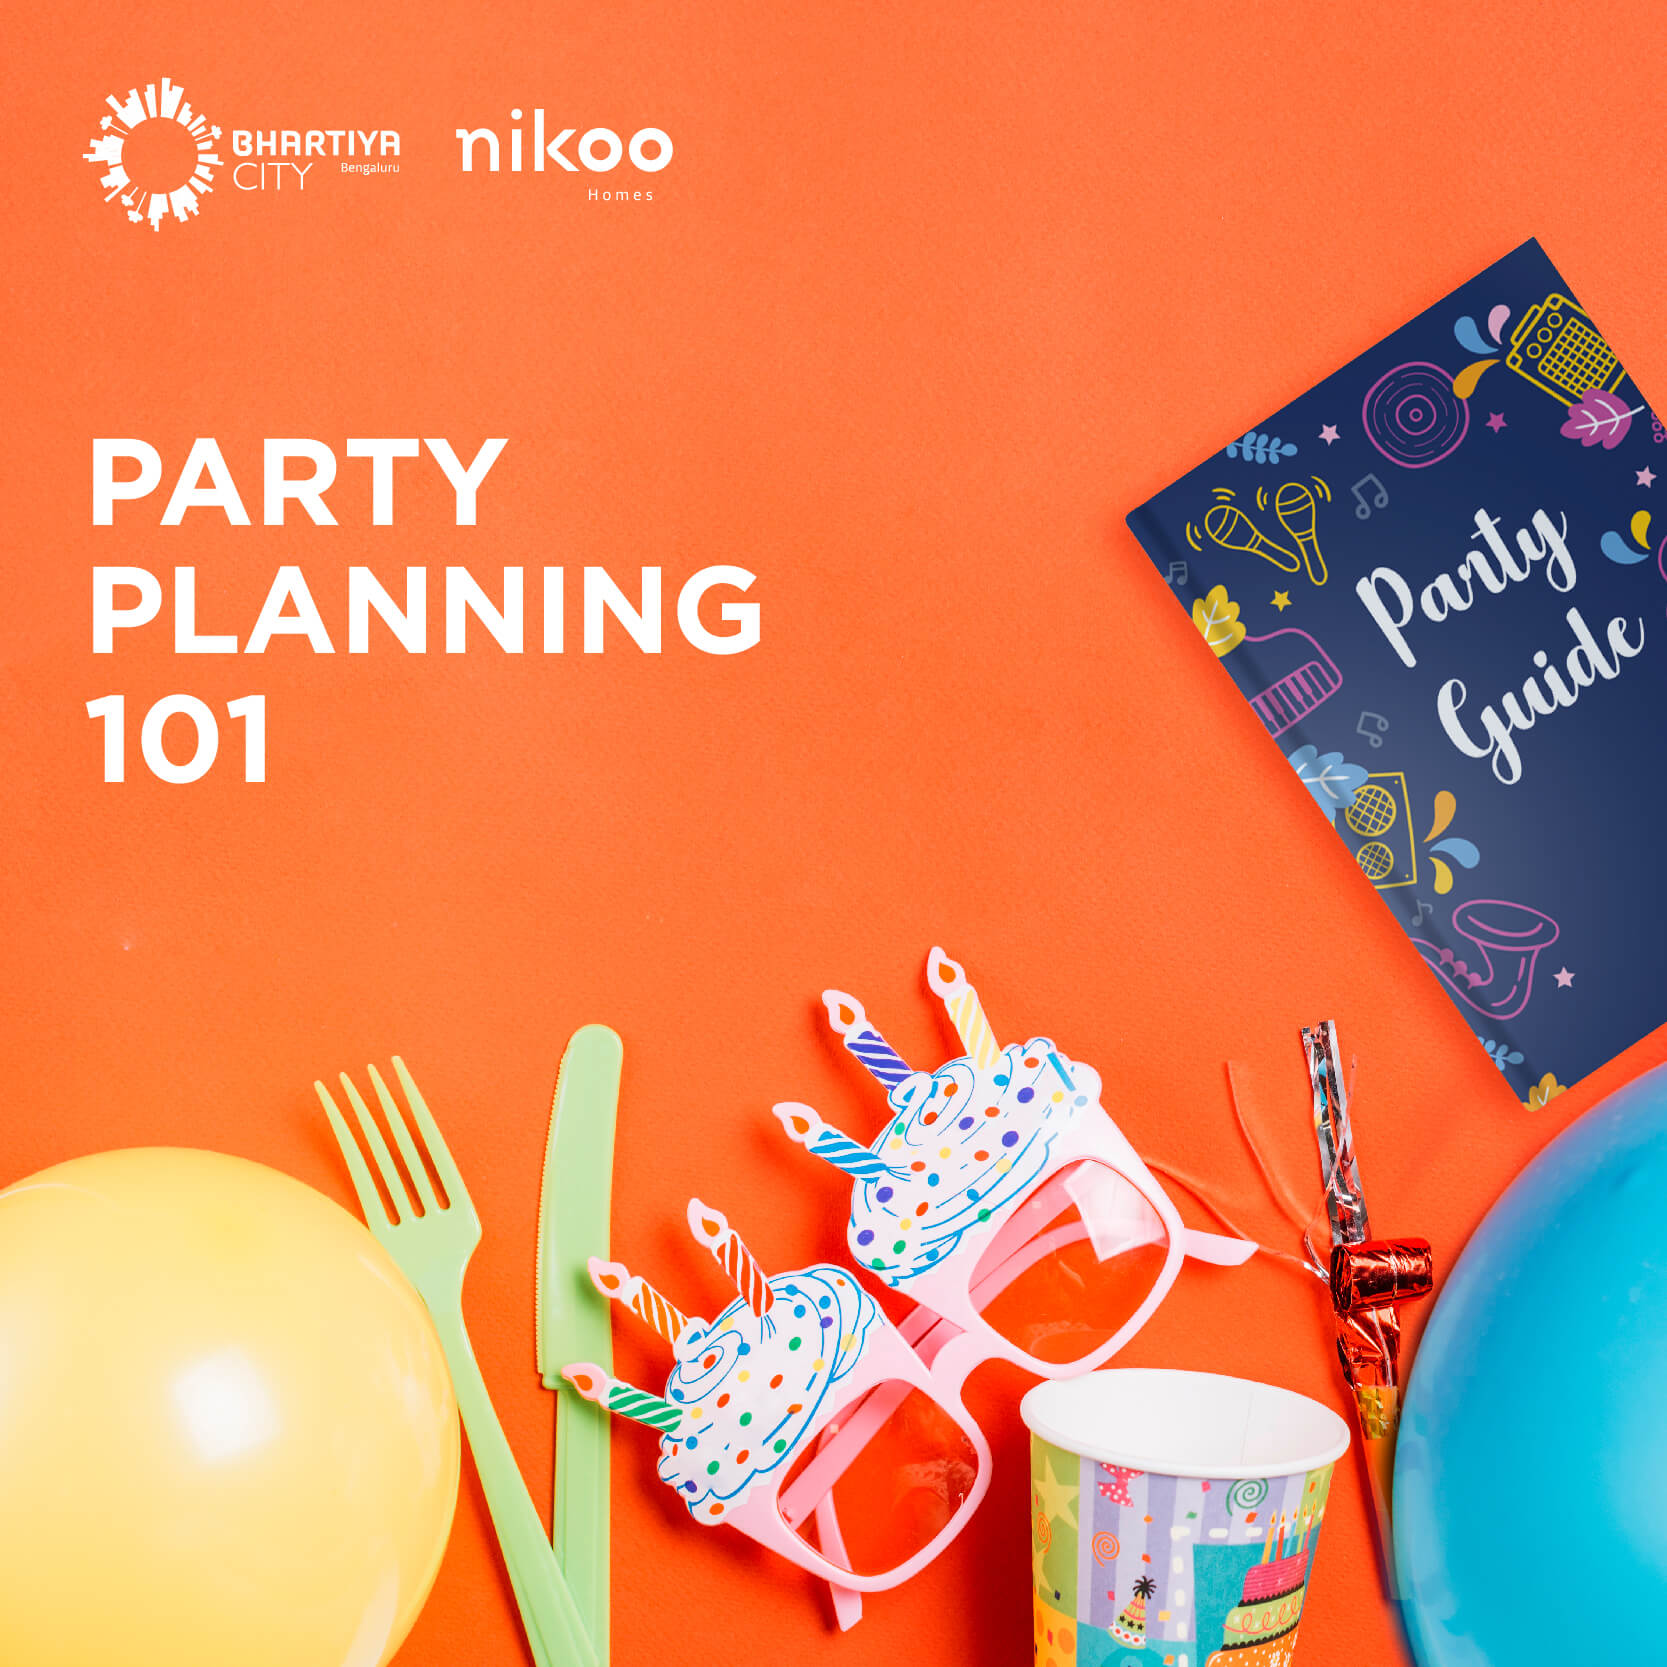 Party planning 101 — a step-by-step guide to throwing the perfect party, the easy way